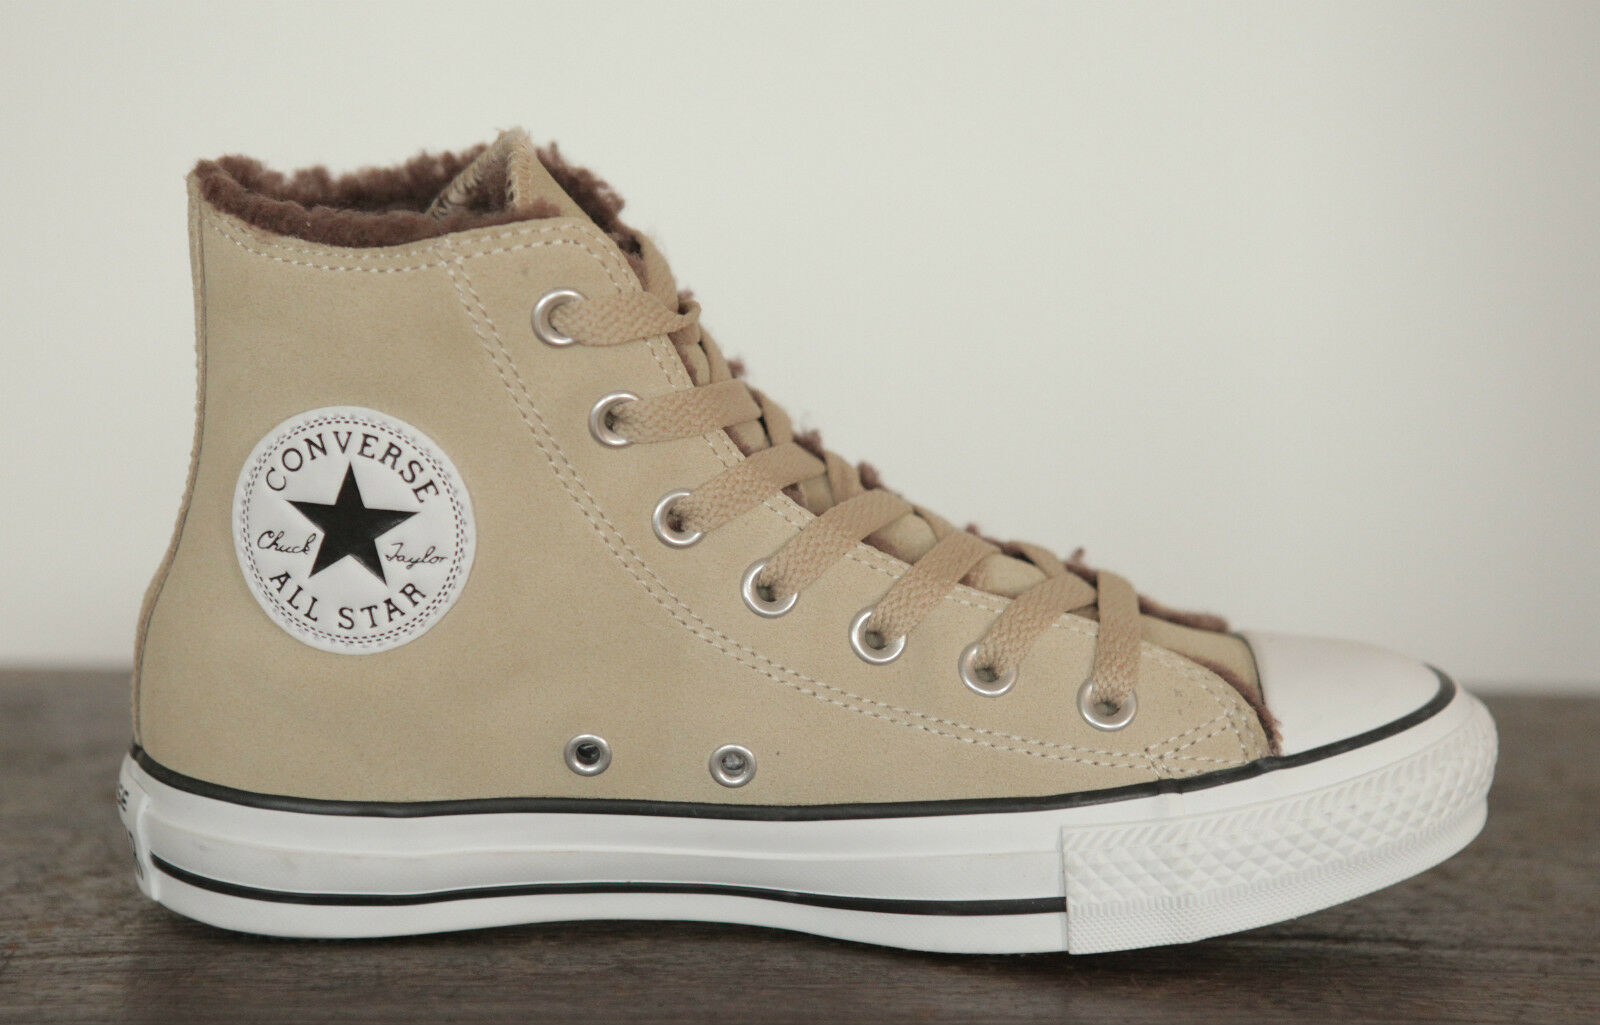 Nouveau All Star Converse Chuck Hi Cuir Leather Boots Boots Boots Doublure Sneaker 139819 C   2019  78815b